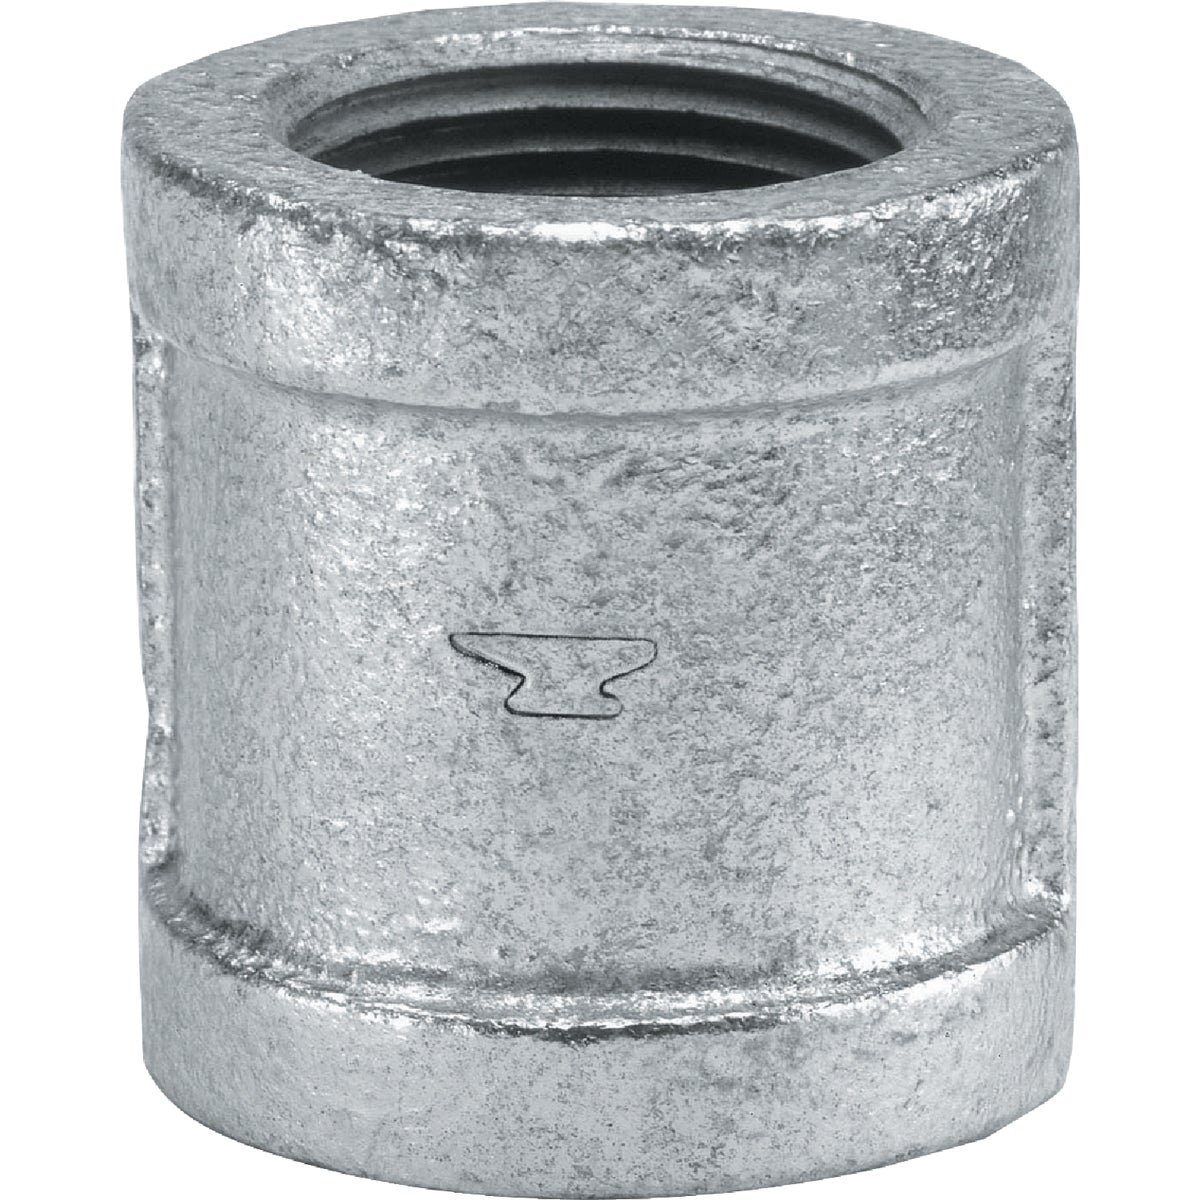 "1/8"" GALV COUPLING - 8700133401 by Anvil International"